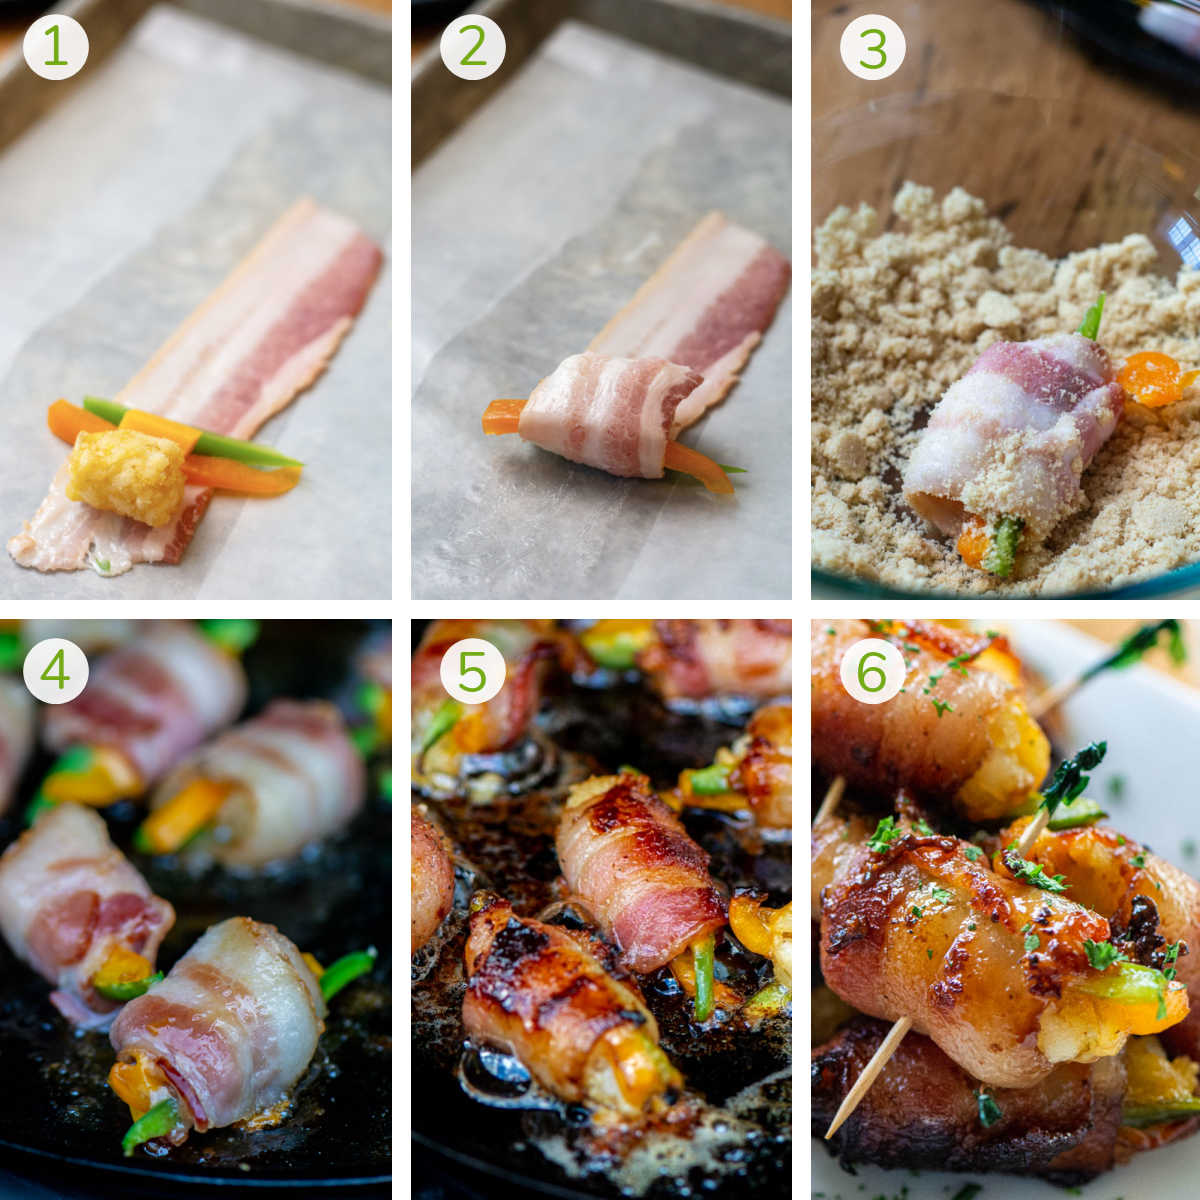 process photos showing wrapping the tater tot, grilling it and serving it with toothpicks.